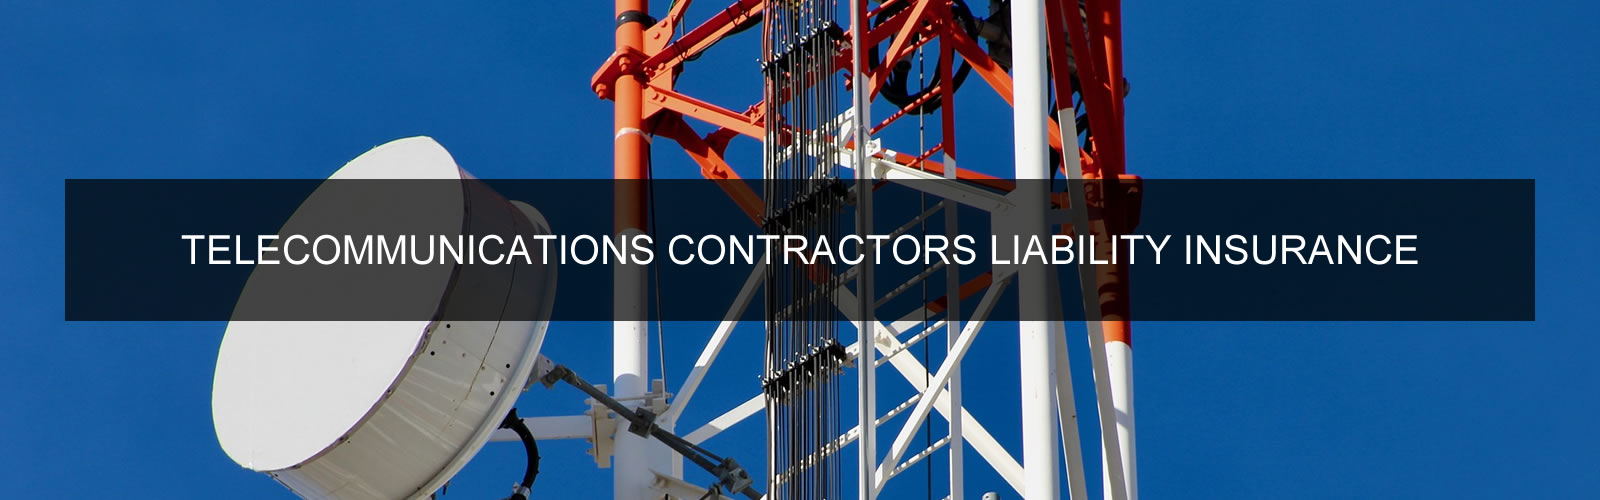 Telecommunications Contractors Liability Insurance